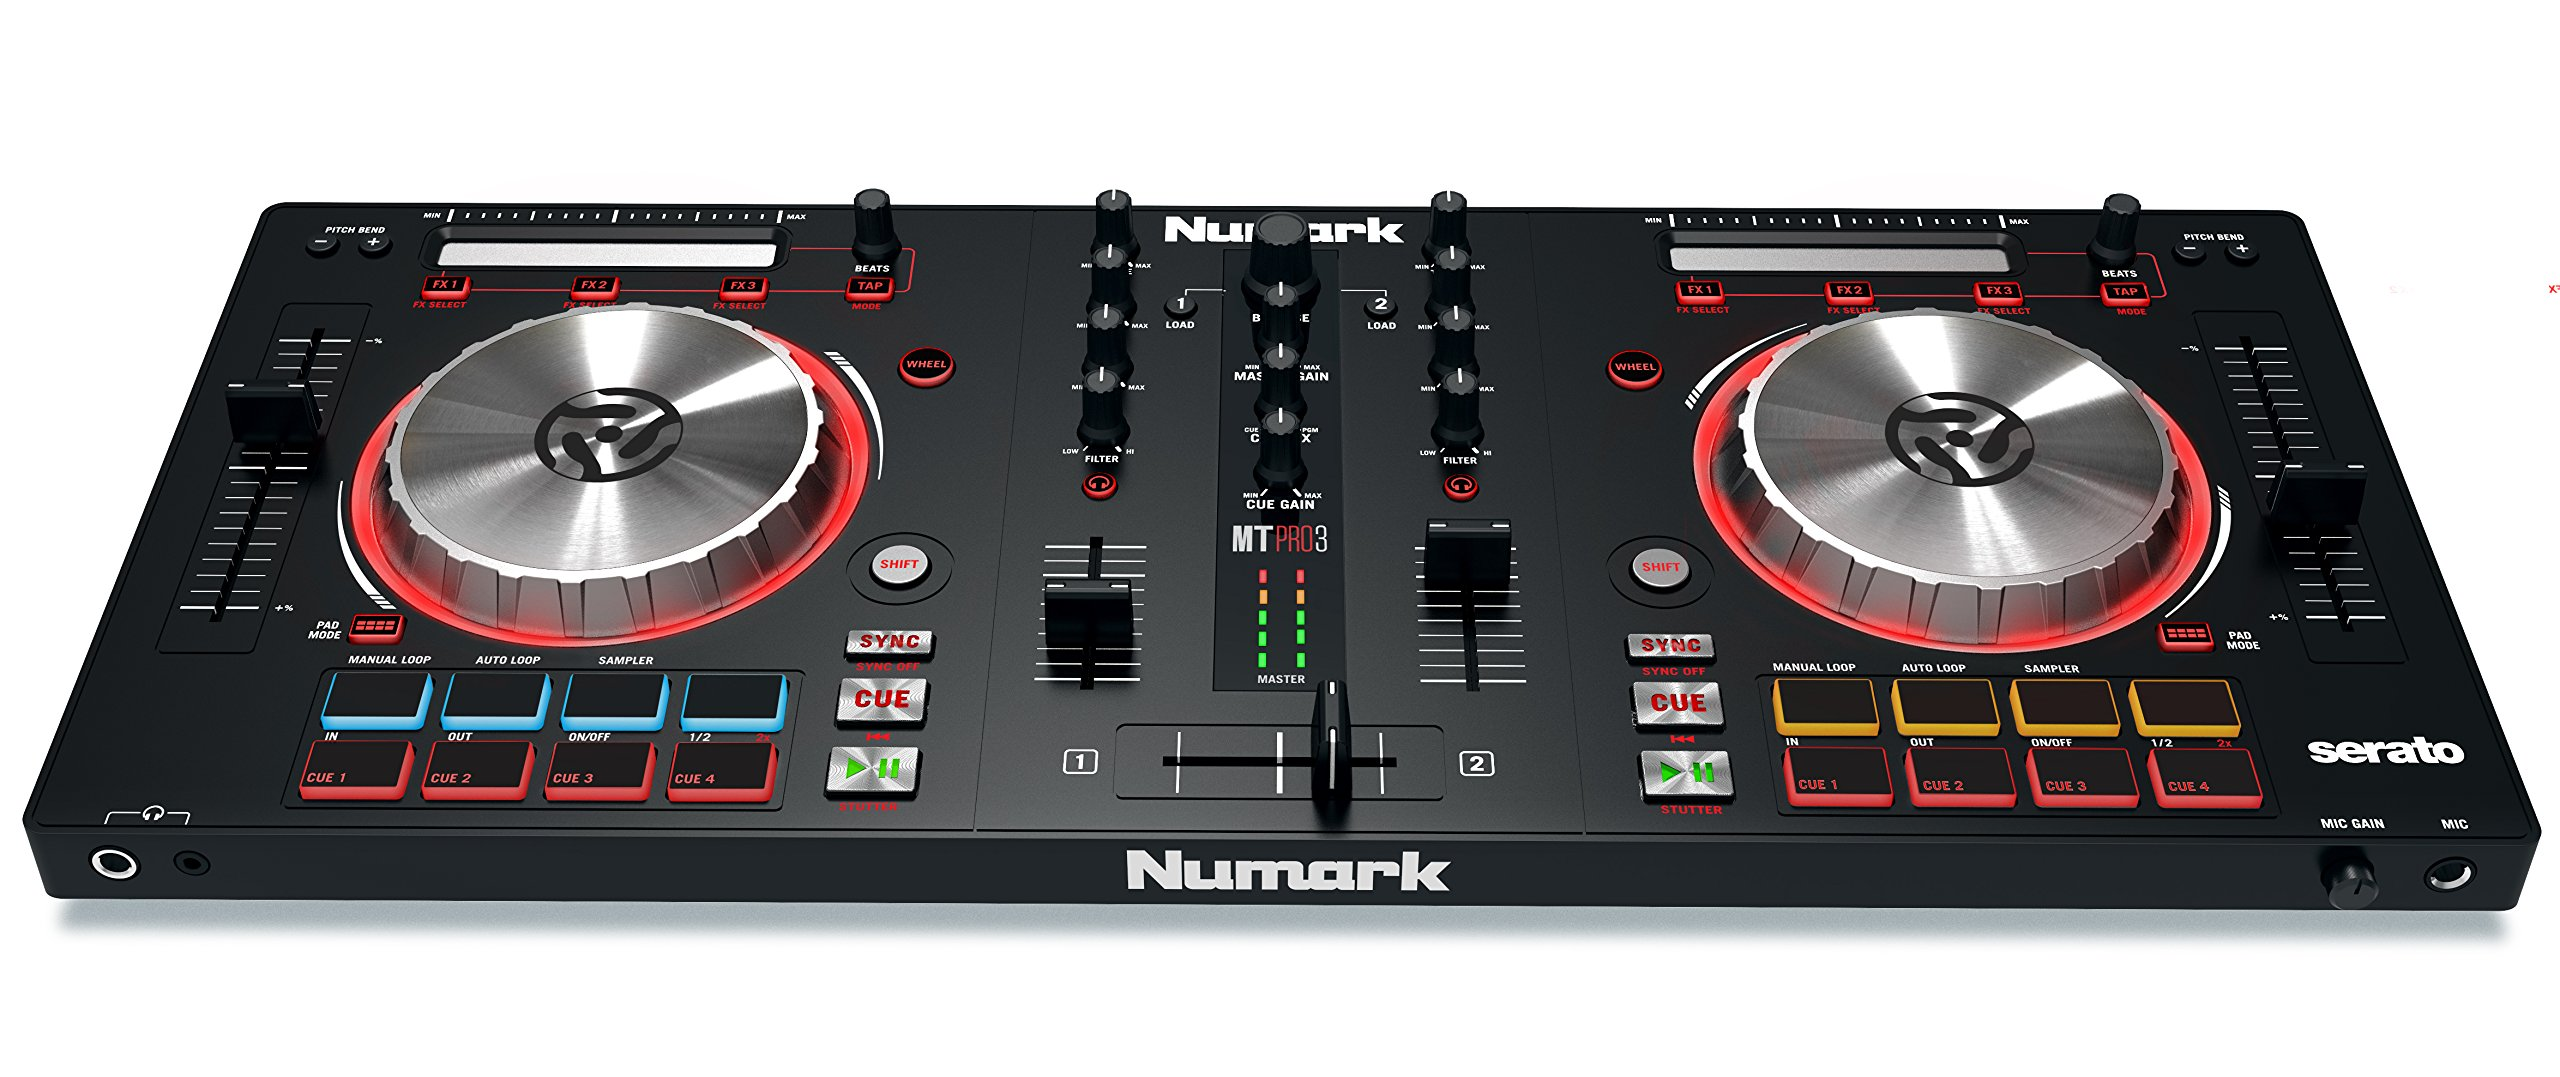 Numark Mixtrack Pro 3 | USB DJ Controller with Trigger Pads & Serato DJ Intro Download (Includes Built-In Sound Card) by Numark (Image #8)